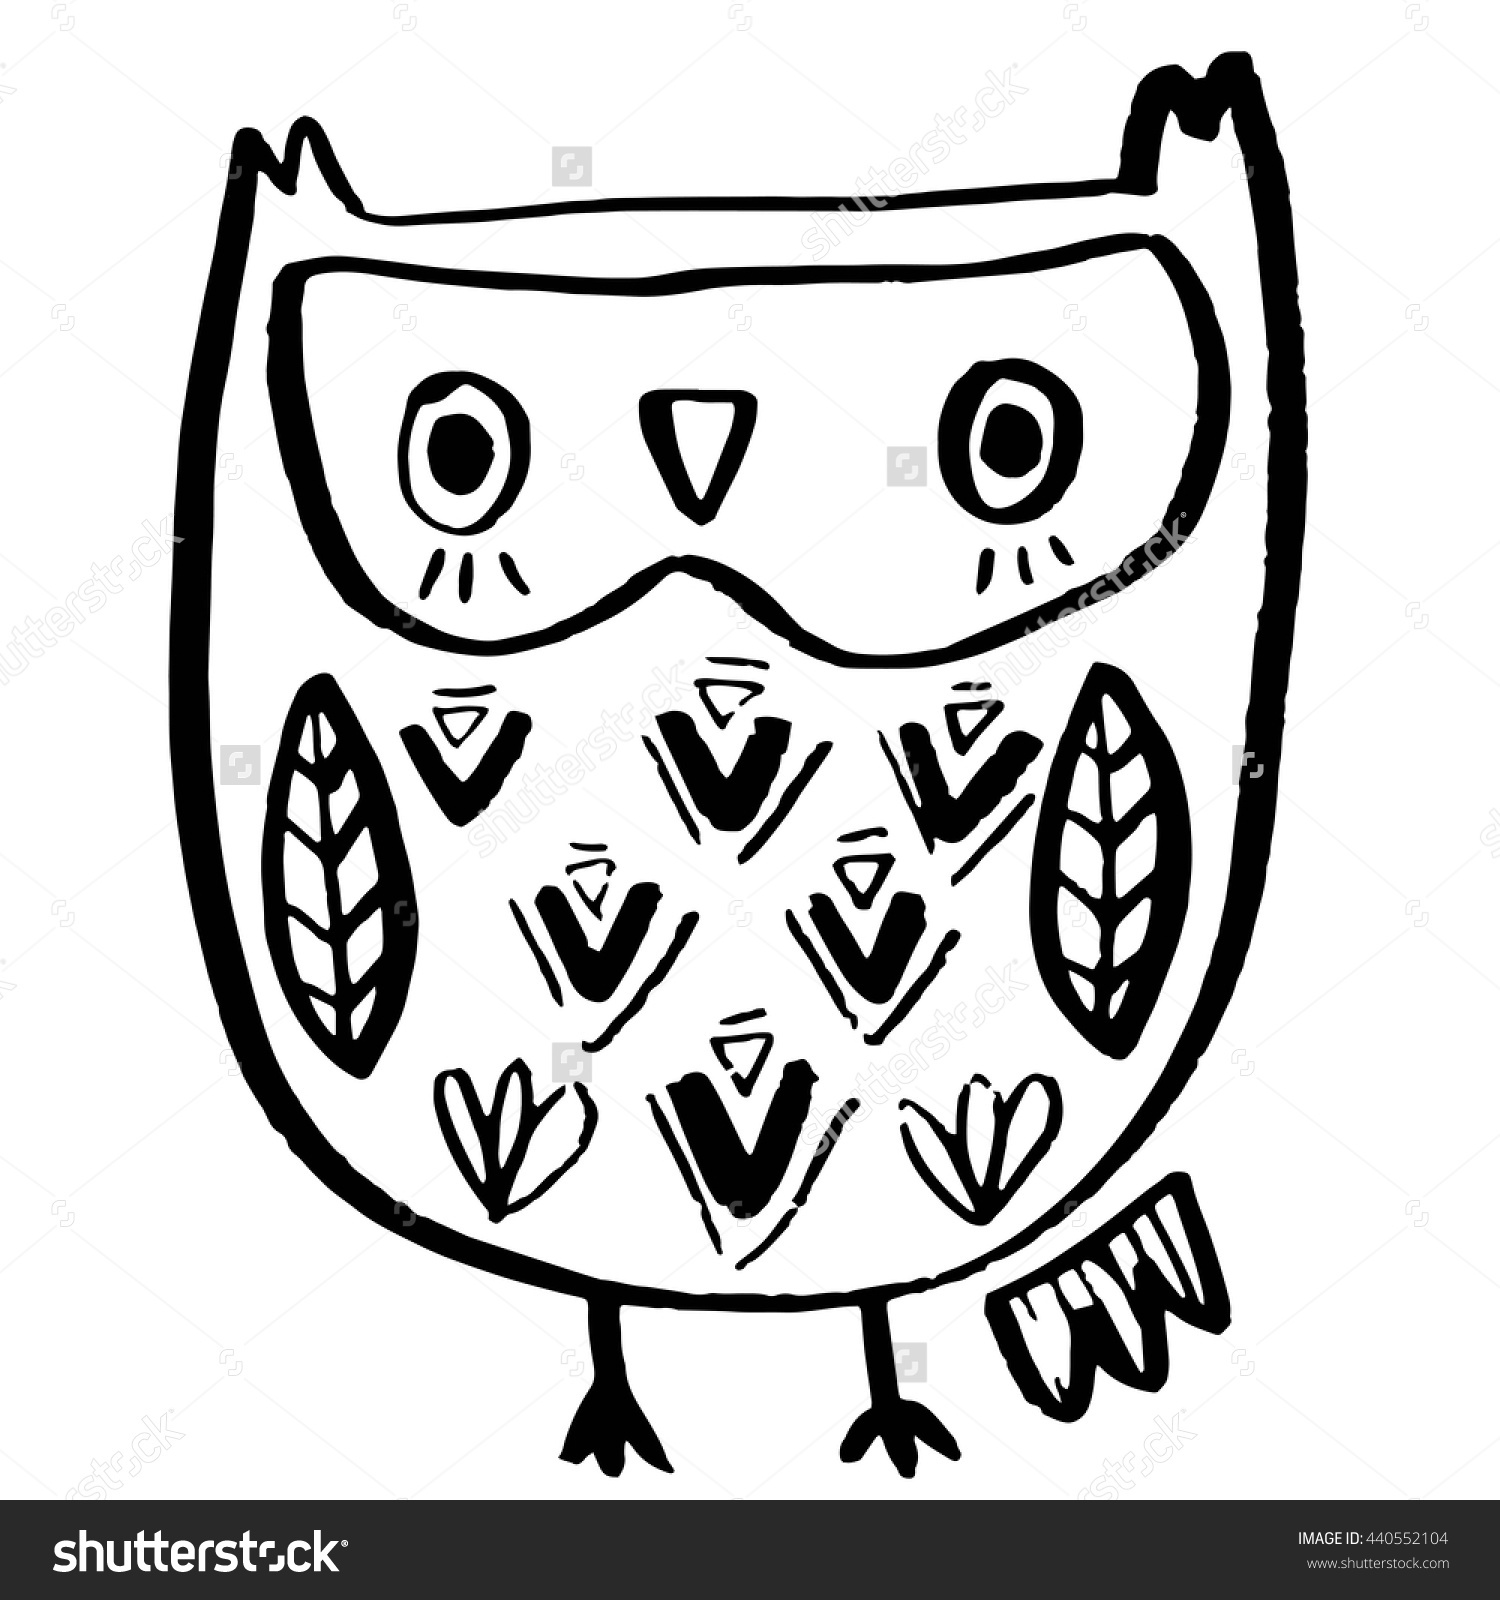 Owlfly clipart #2, Download drawings